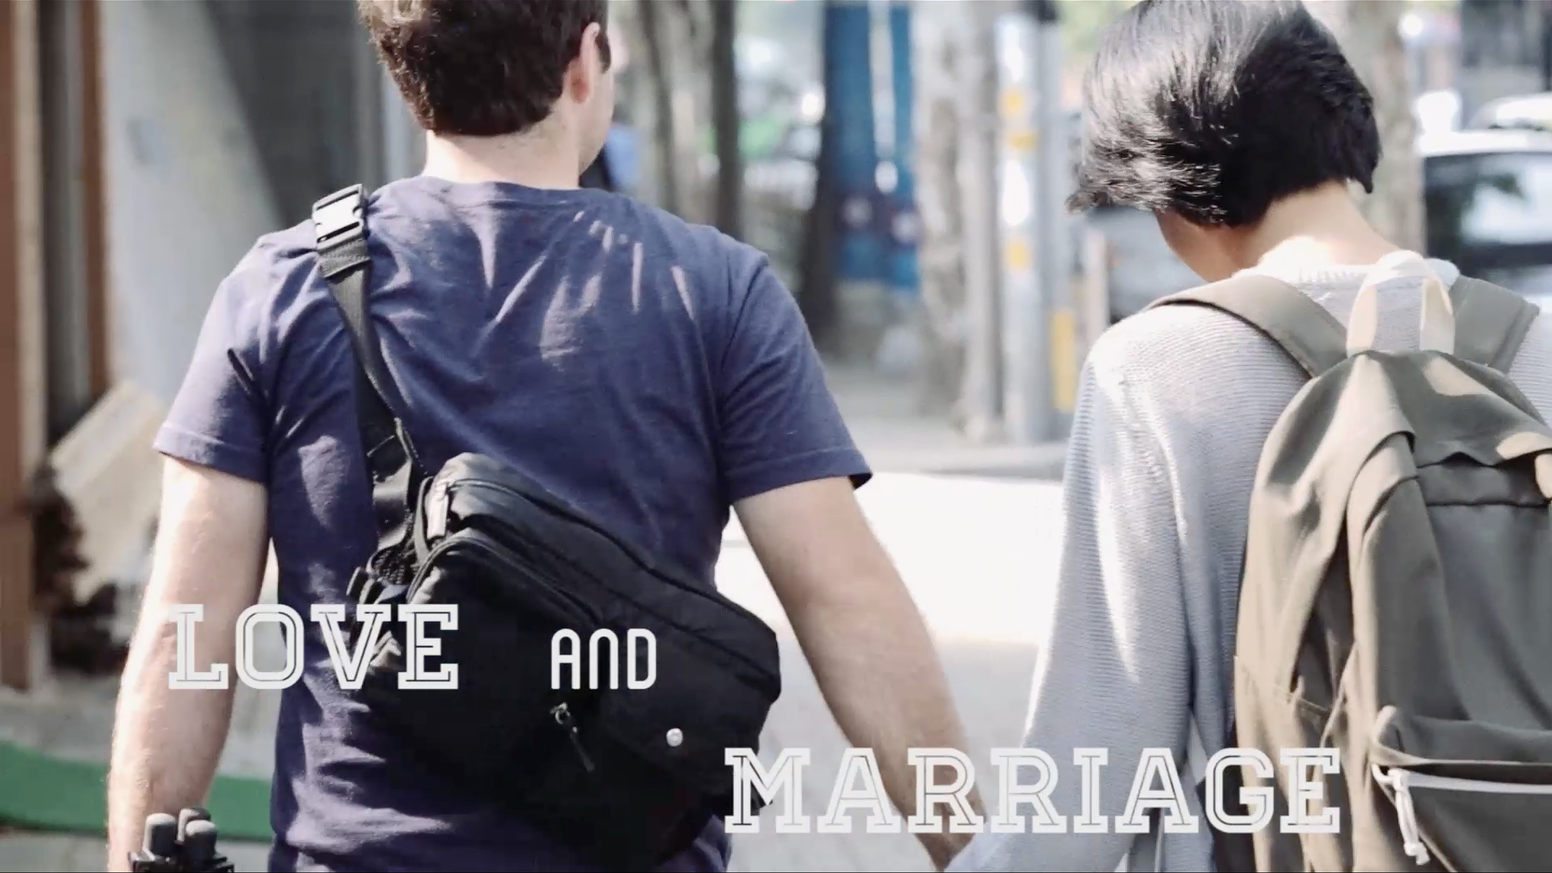 Love And Marriage - A Documentary by David Kang — Kickstarter